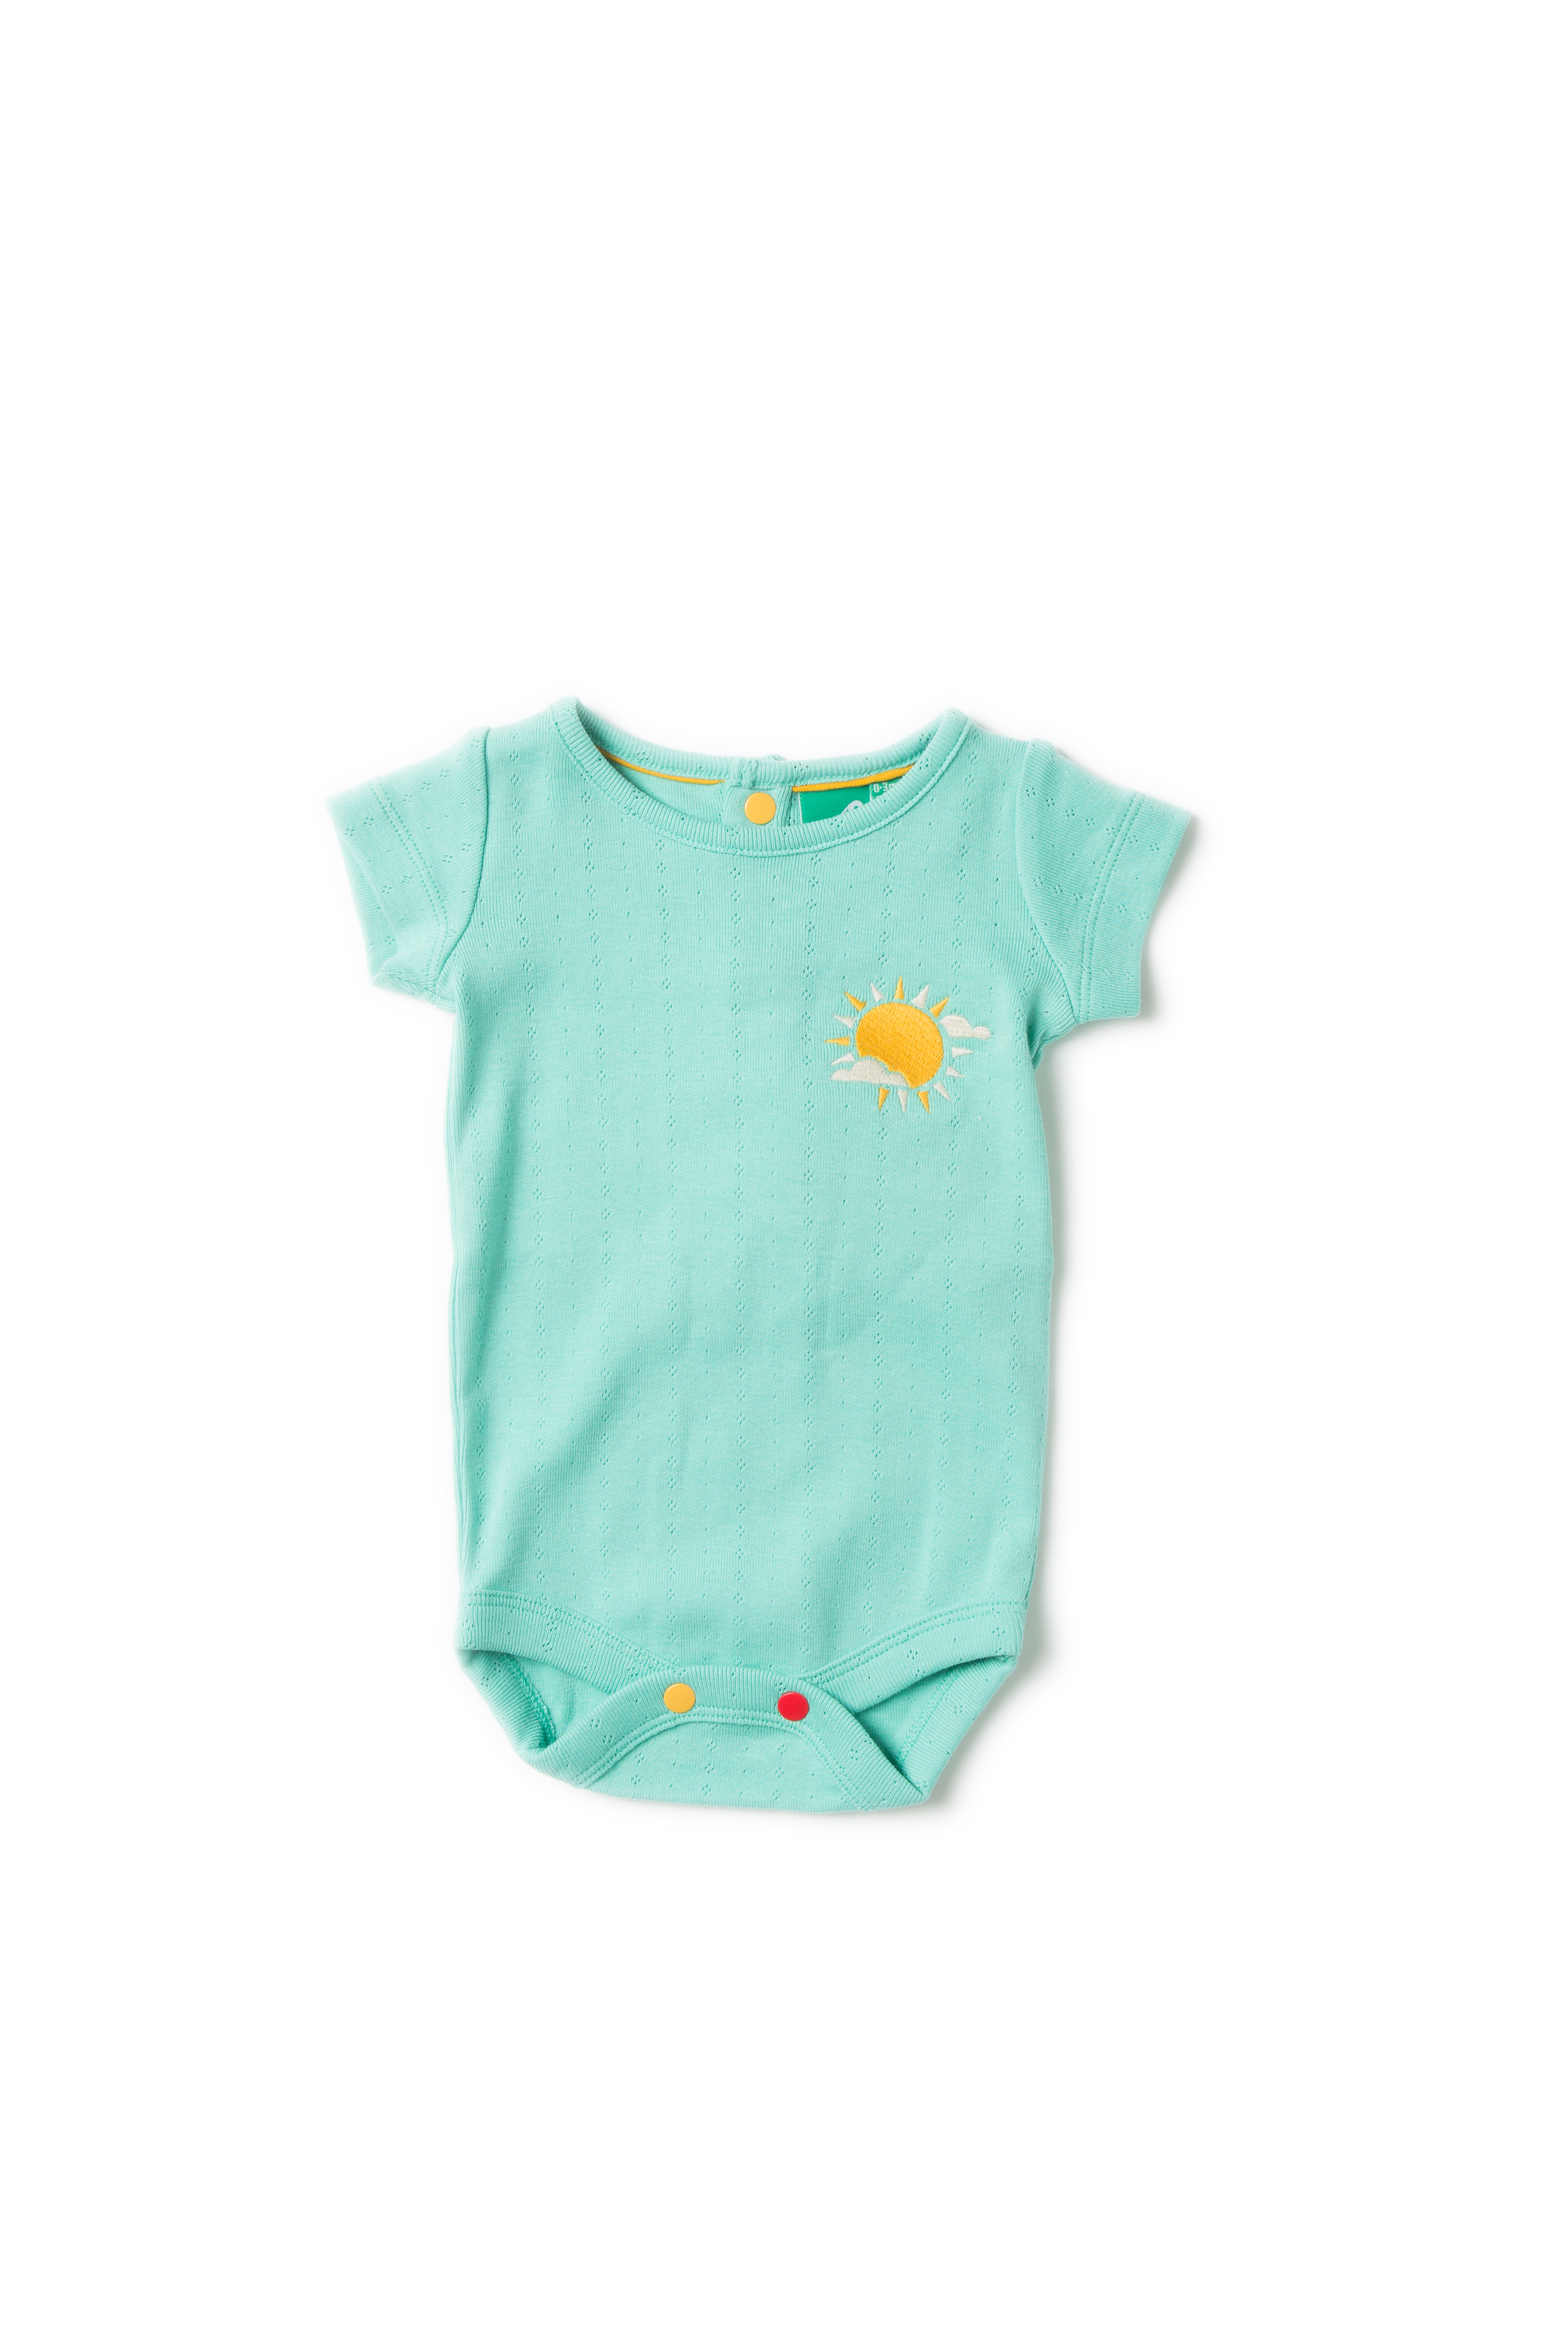 LGR- Pale turquoise baby body